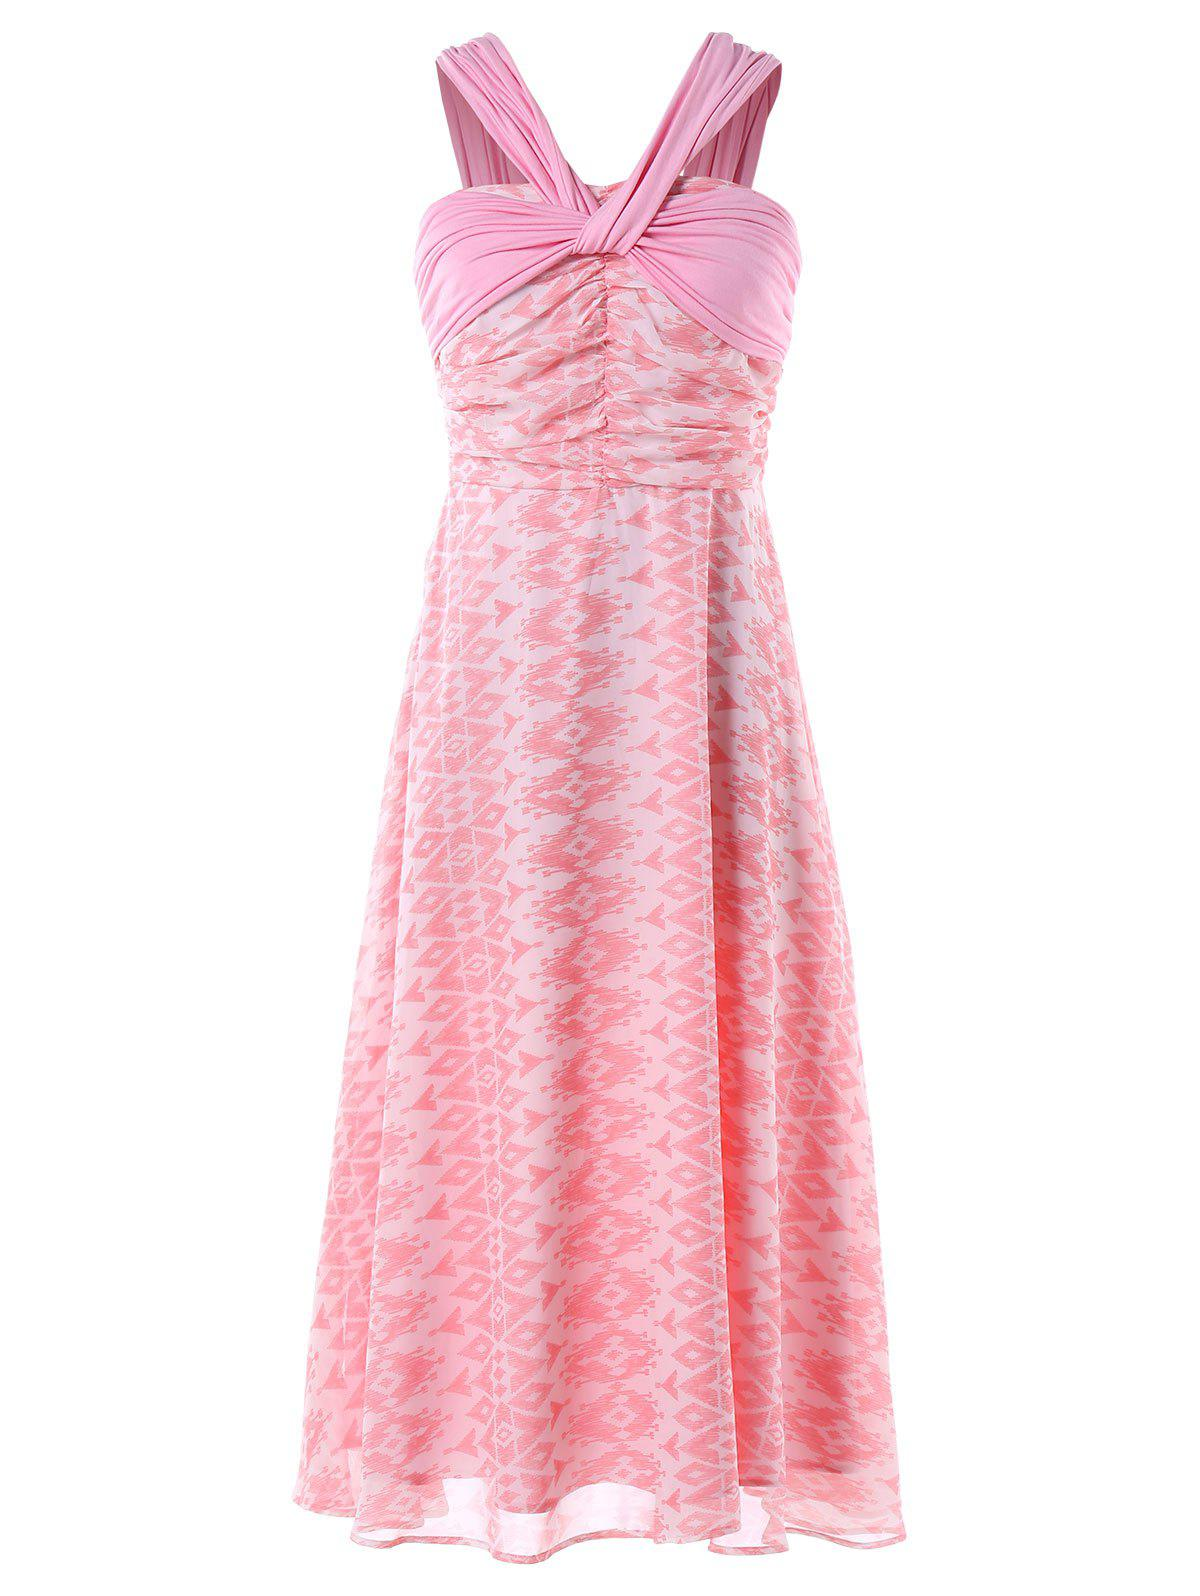 Aztec Print Midi Sleeveless Dress - LIGHT PINK M